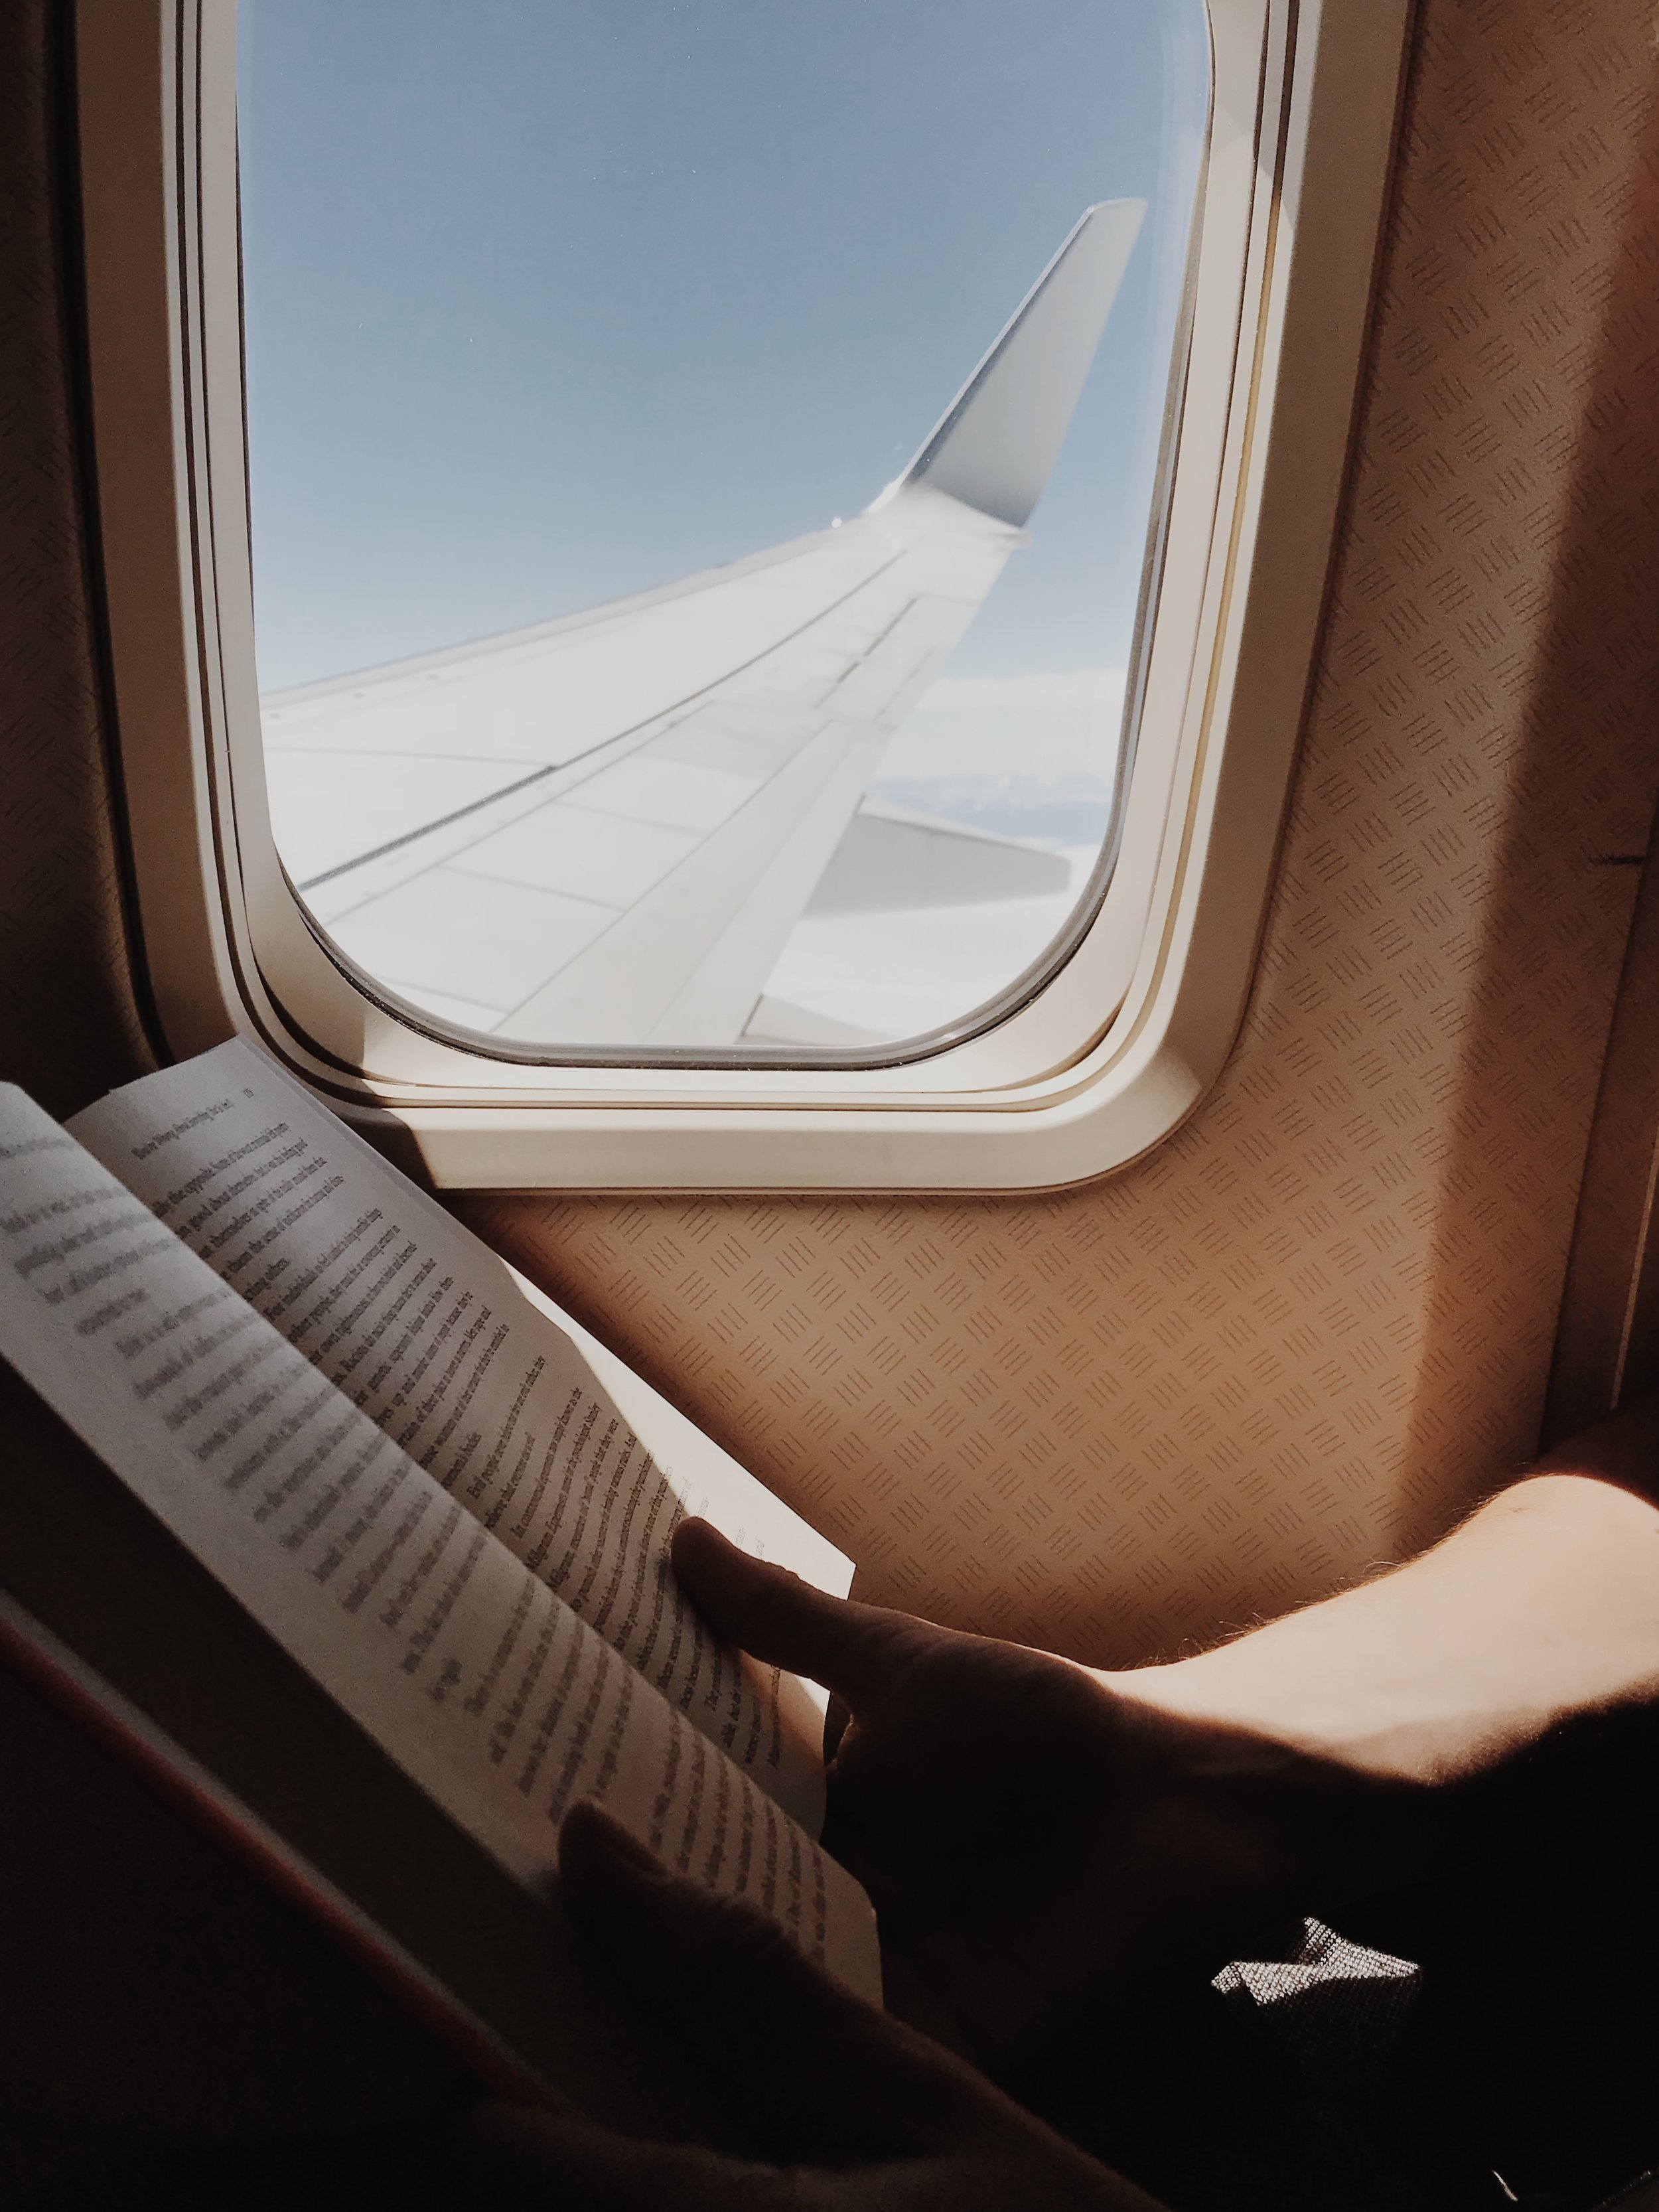 person reading a book next to the window on an airplane